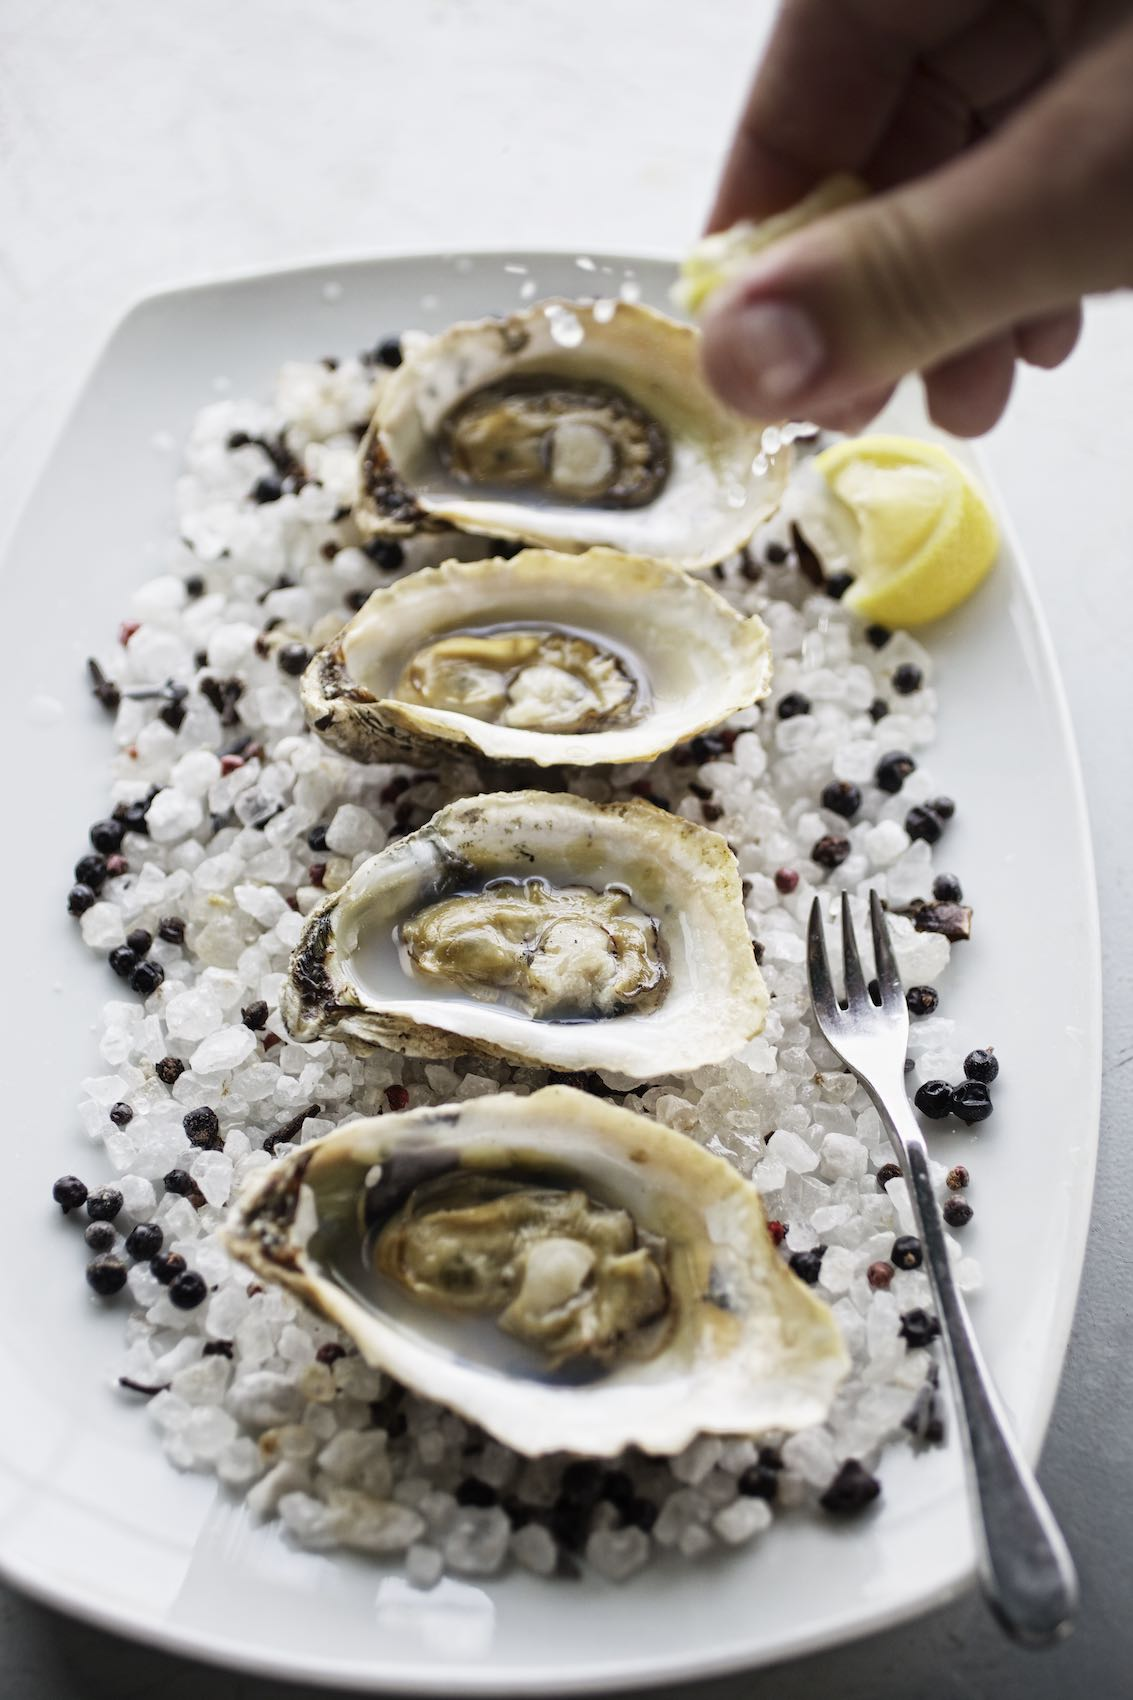 Jody Horton Photography - Four raw oysters with lemon on a white tray.